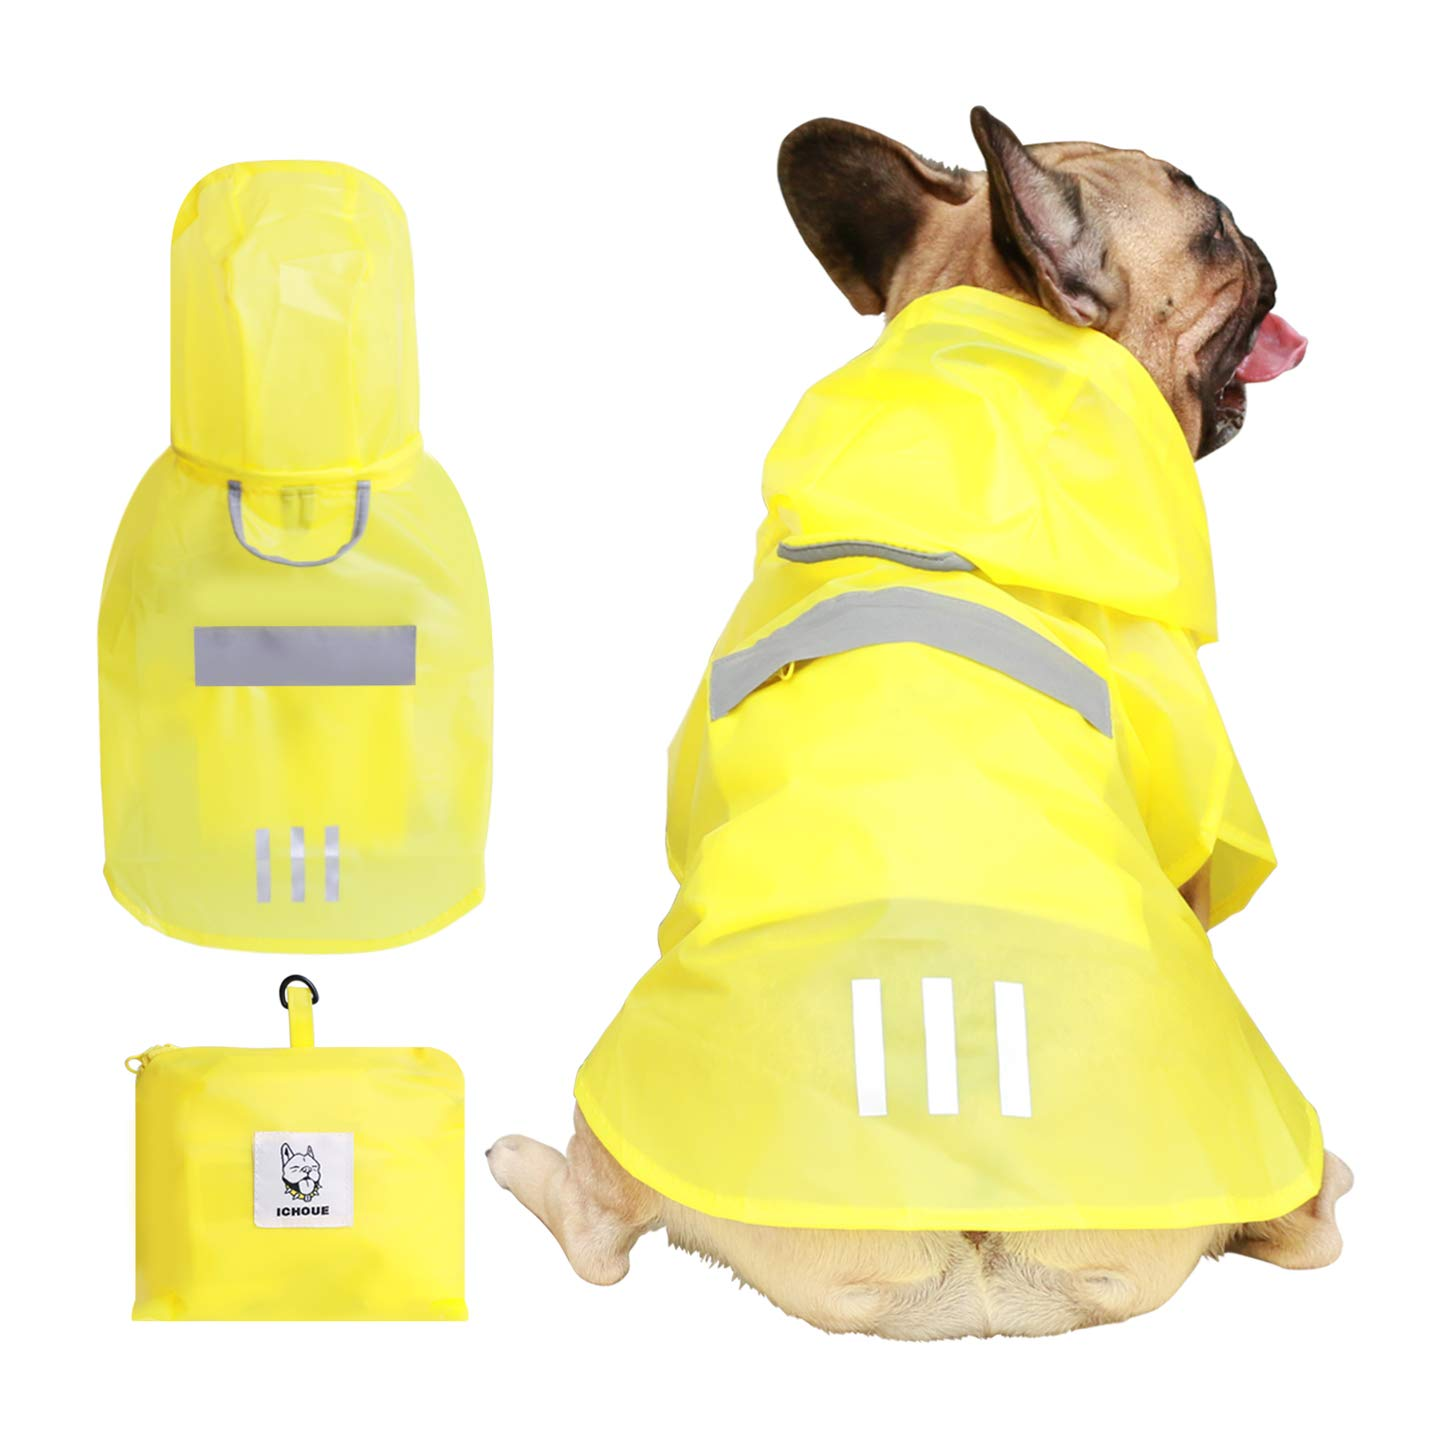 iChoue Dog Raincoat Packable Waterproof Adjustable with Reflective Straps Lightweight Rain Jacket for Large French Bulldog Pug (Yellow, L) by iChoue